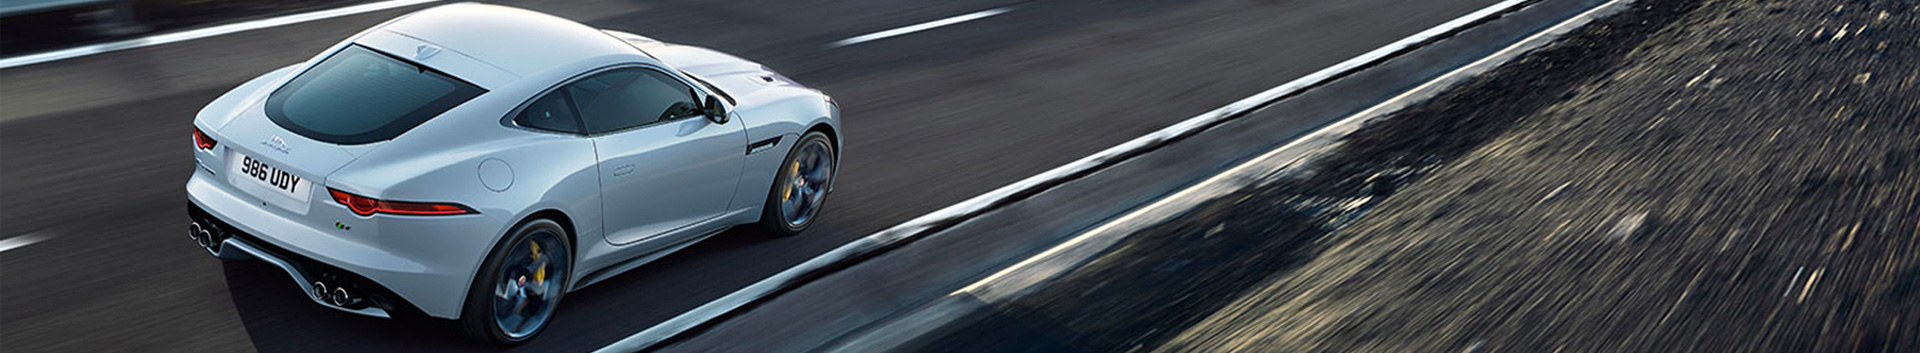 Jaguar F-TYPE Why Certified Pre-Owned